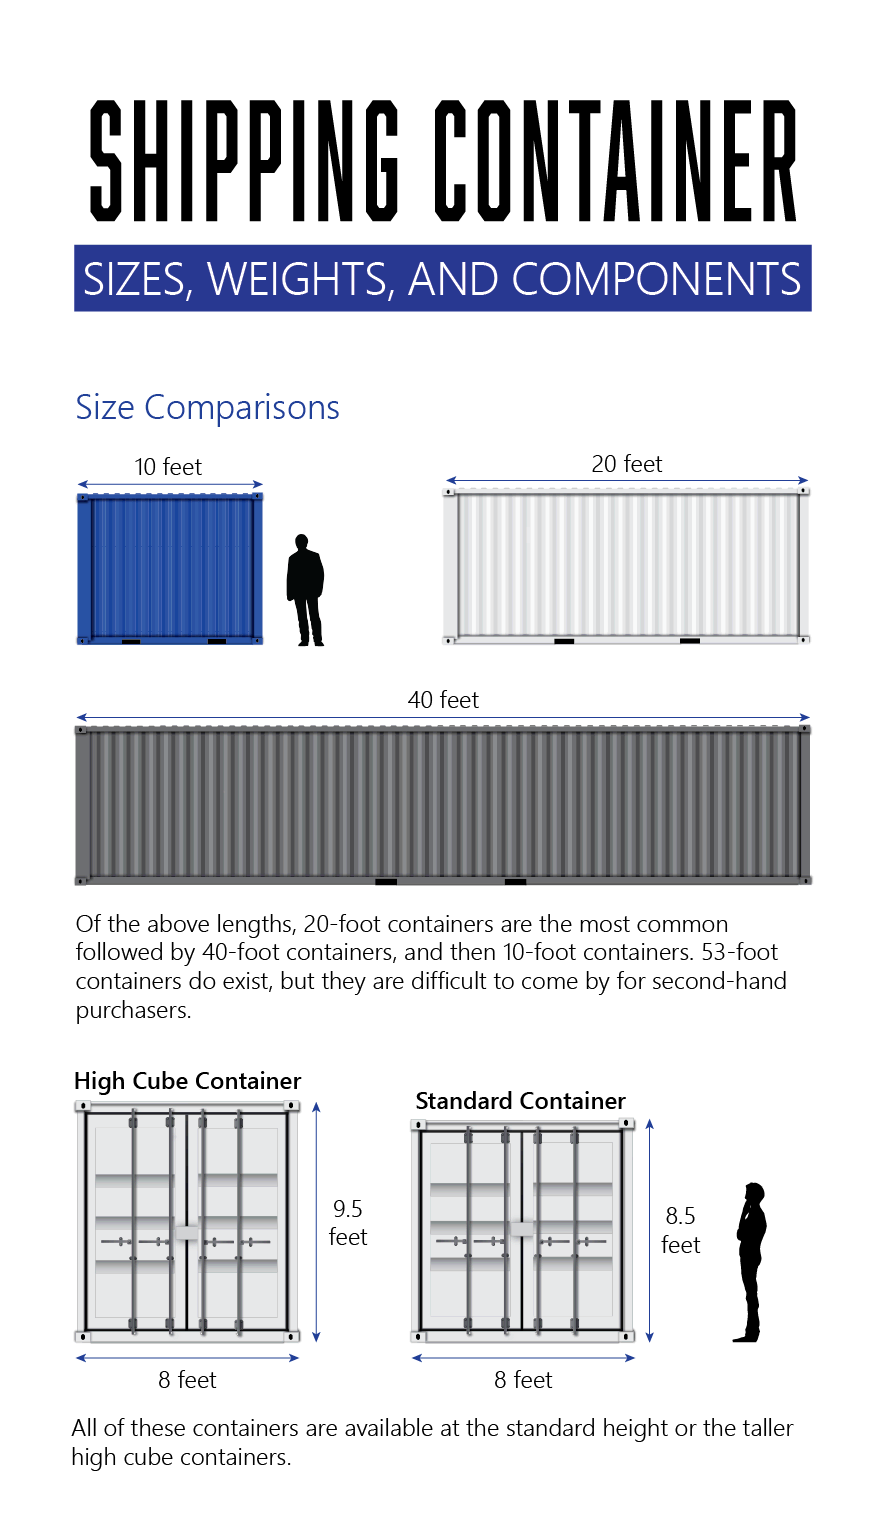 Infographic with sizes for 10-foot, 20-foot, and 40-foot shipping containers